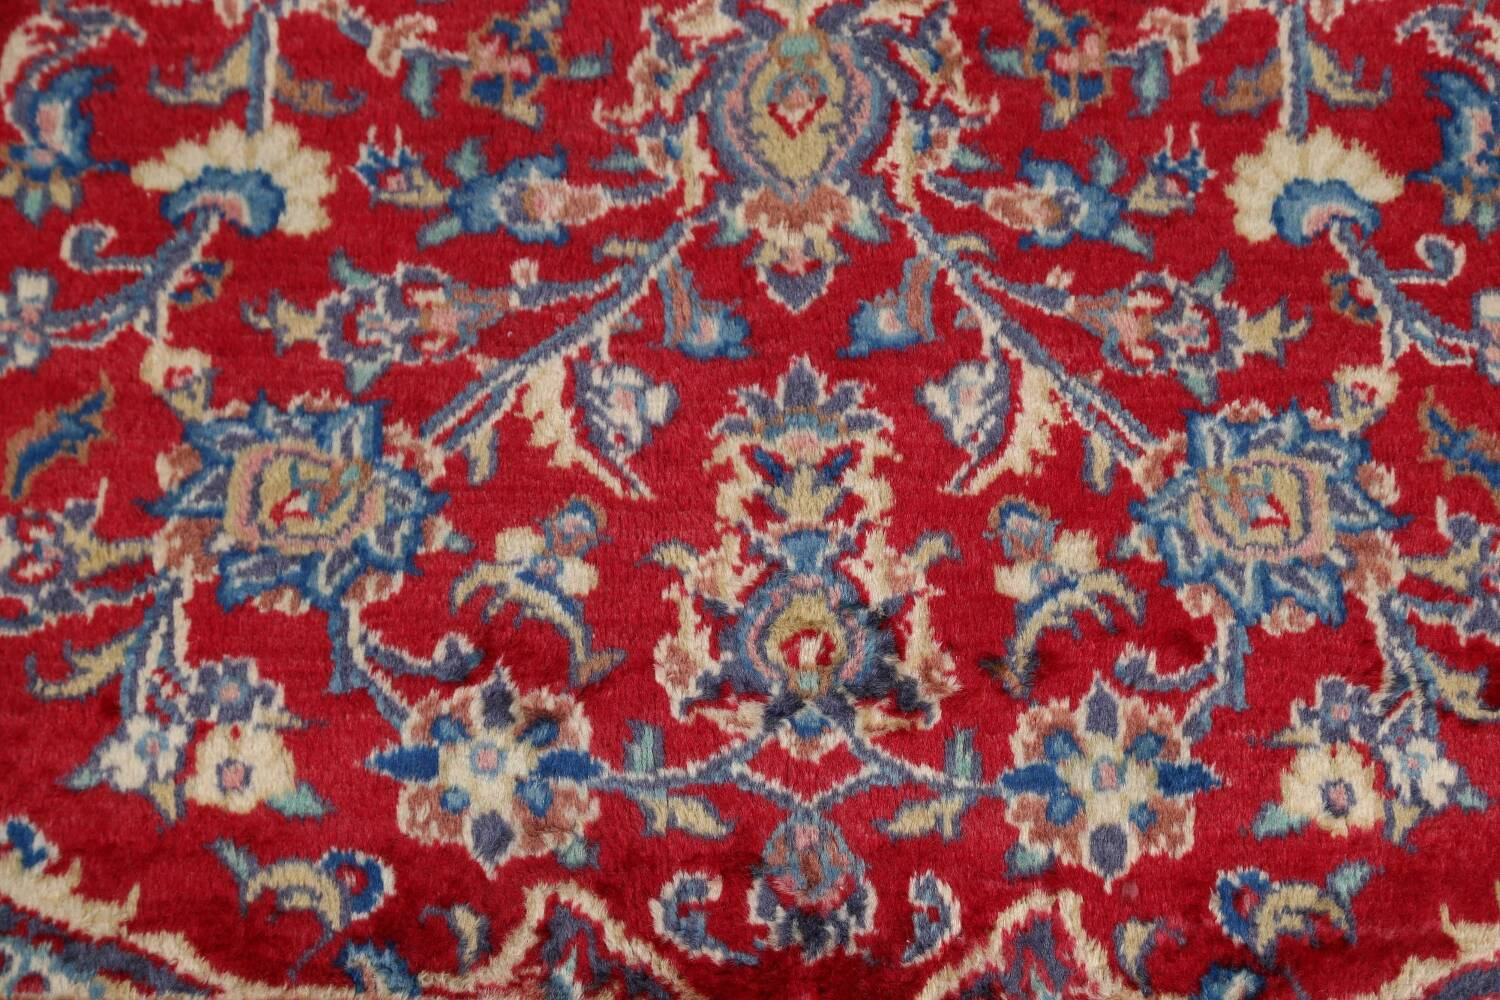 Vintage Floral Red Mashad Persian Area Rug 10x12 image 10